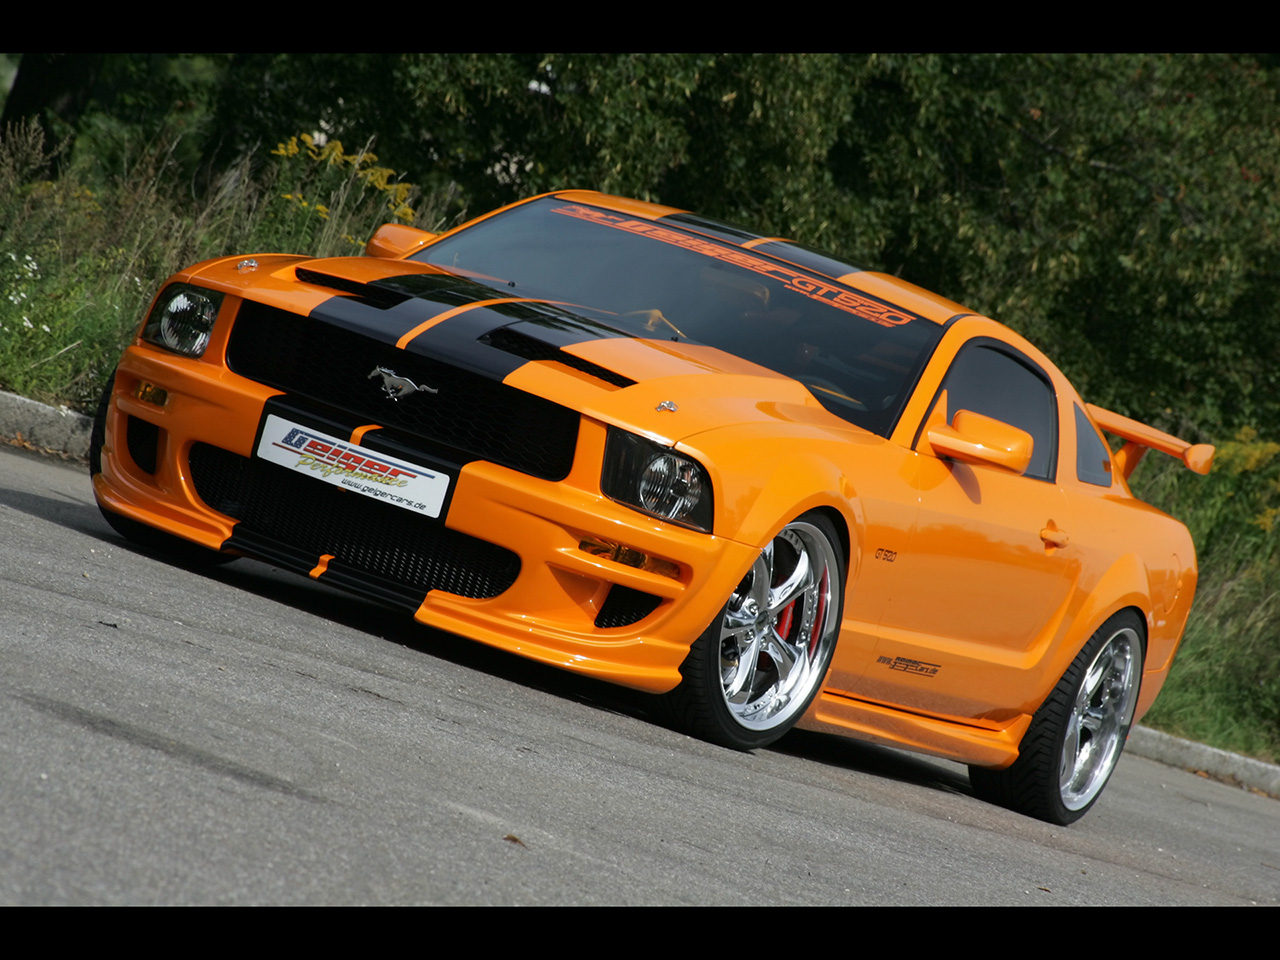 photos ford mustang images ford mustang images ford mustang images 1280x960